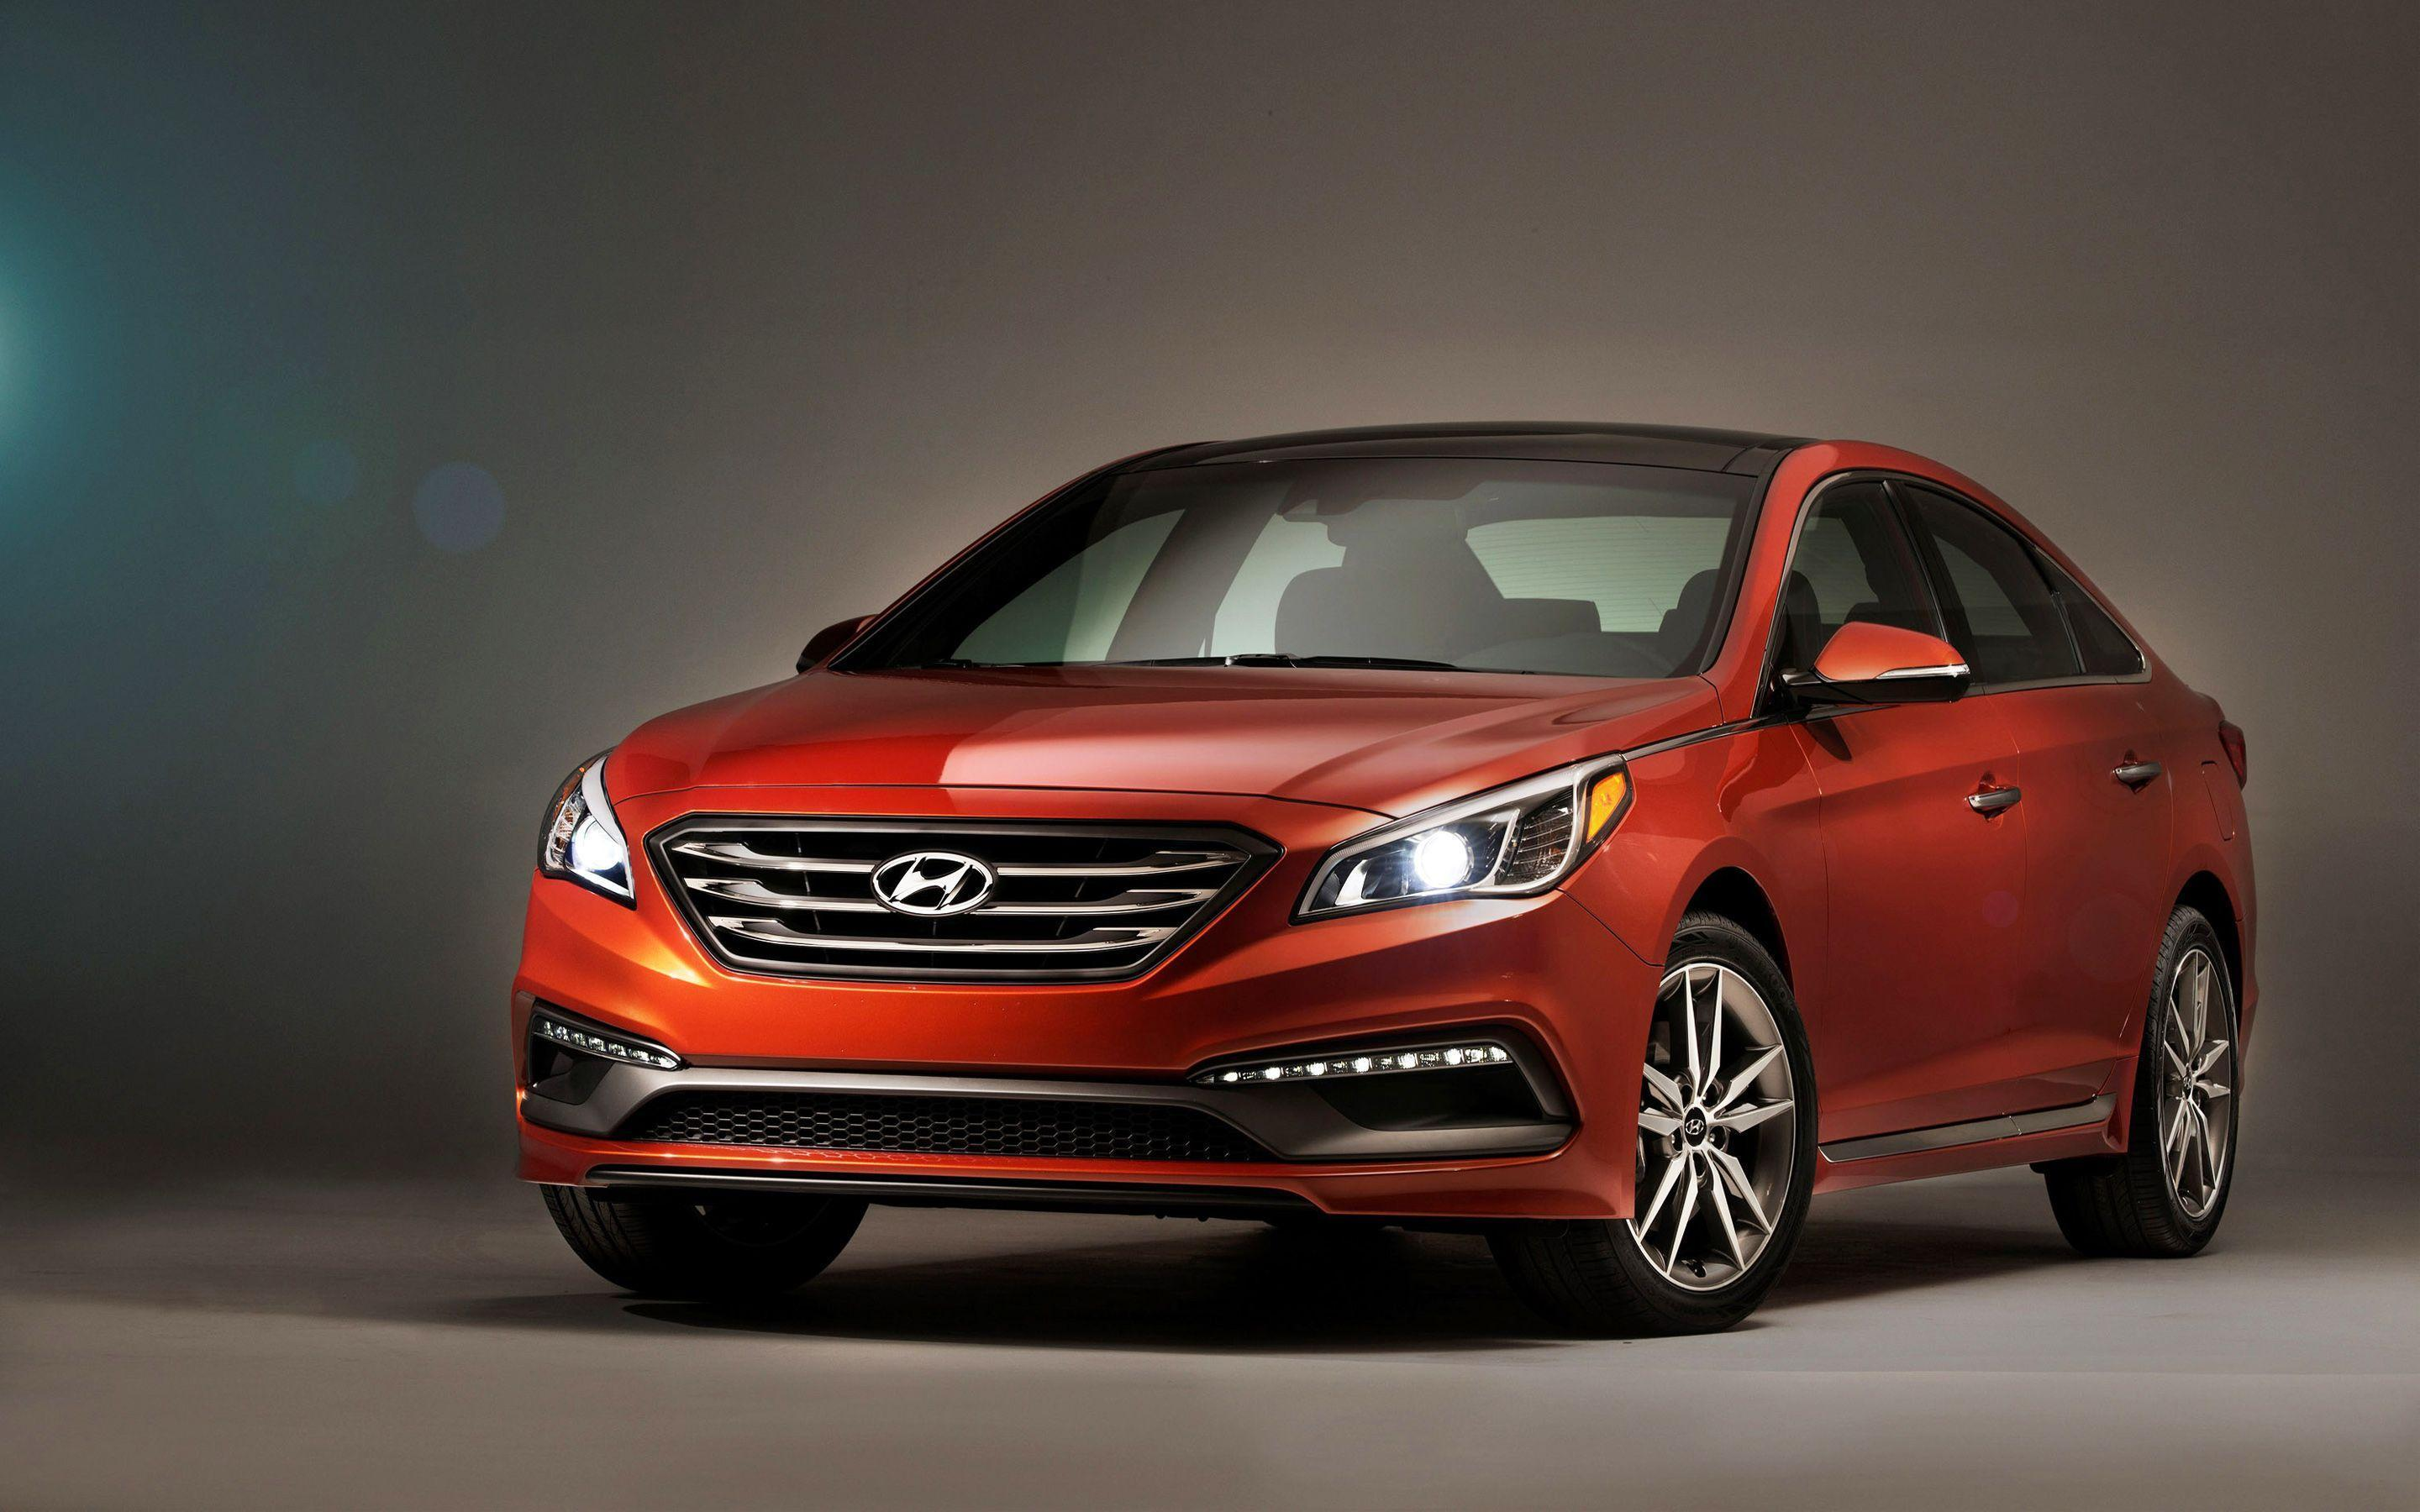 2015 Hyundai Sonata Wallpapers